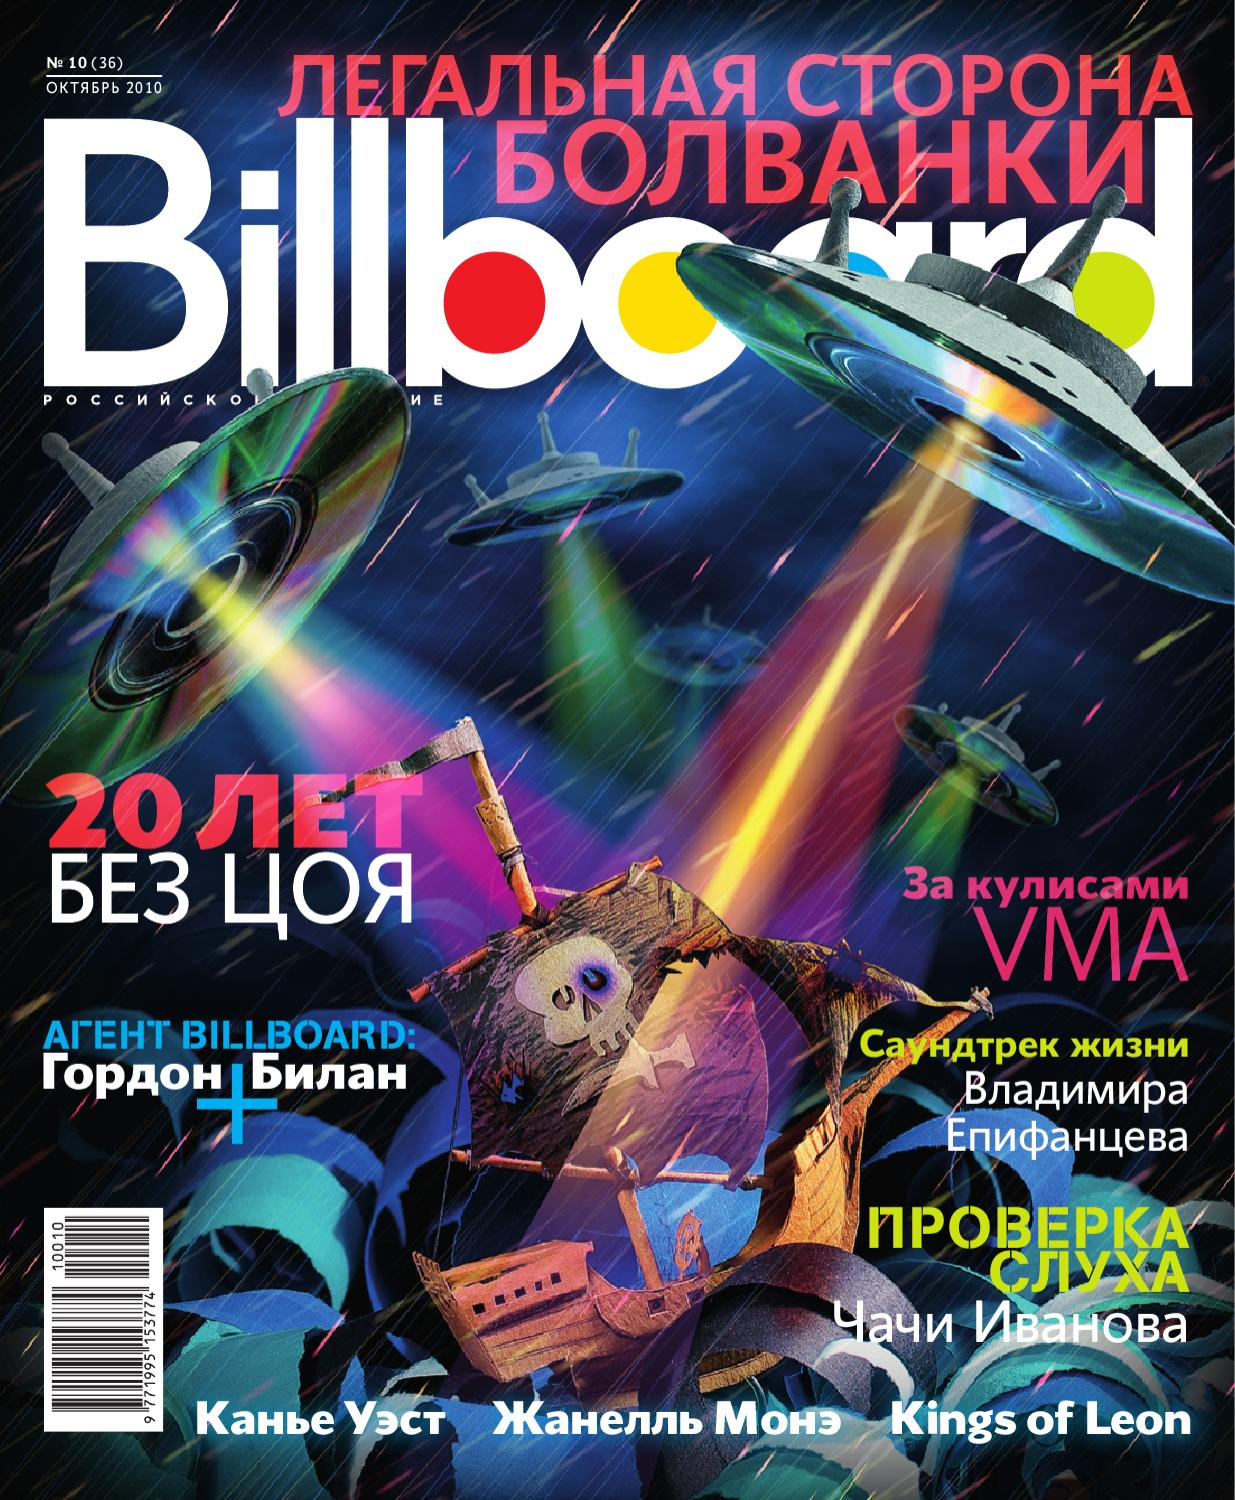 bb36 by Михаил Апакин - issuu 4d6a17c129f